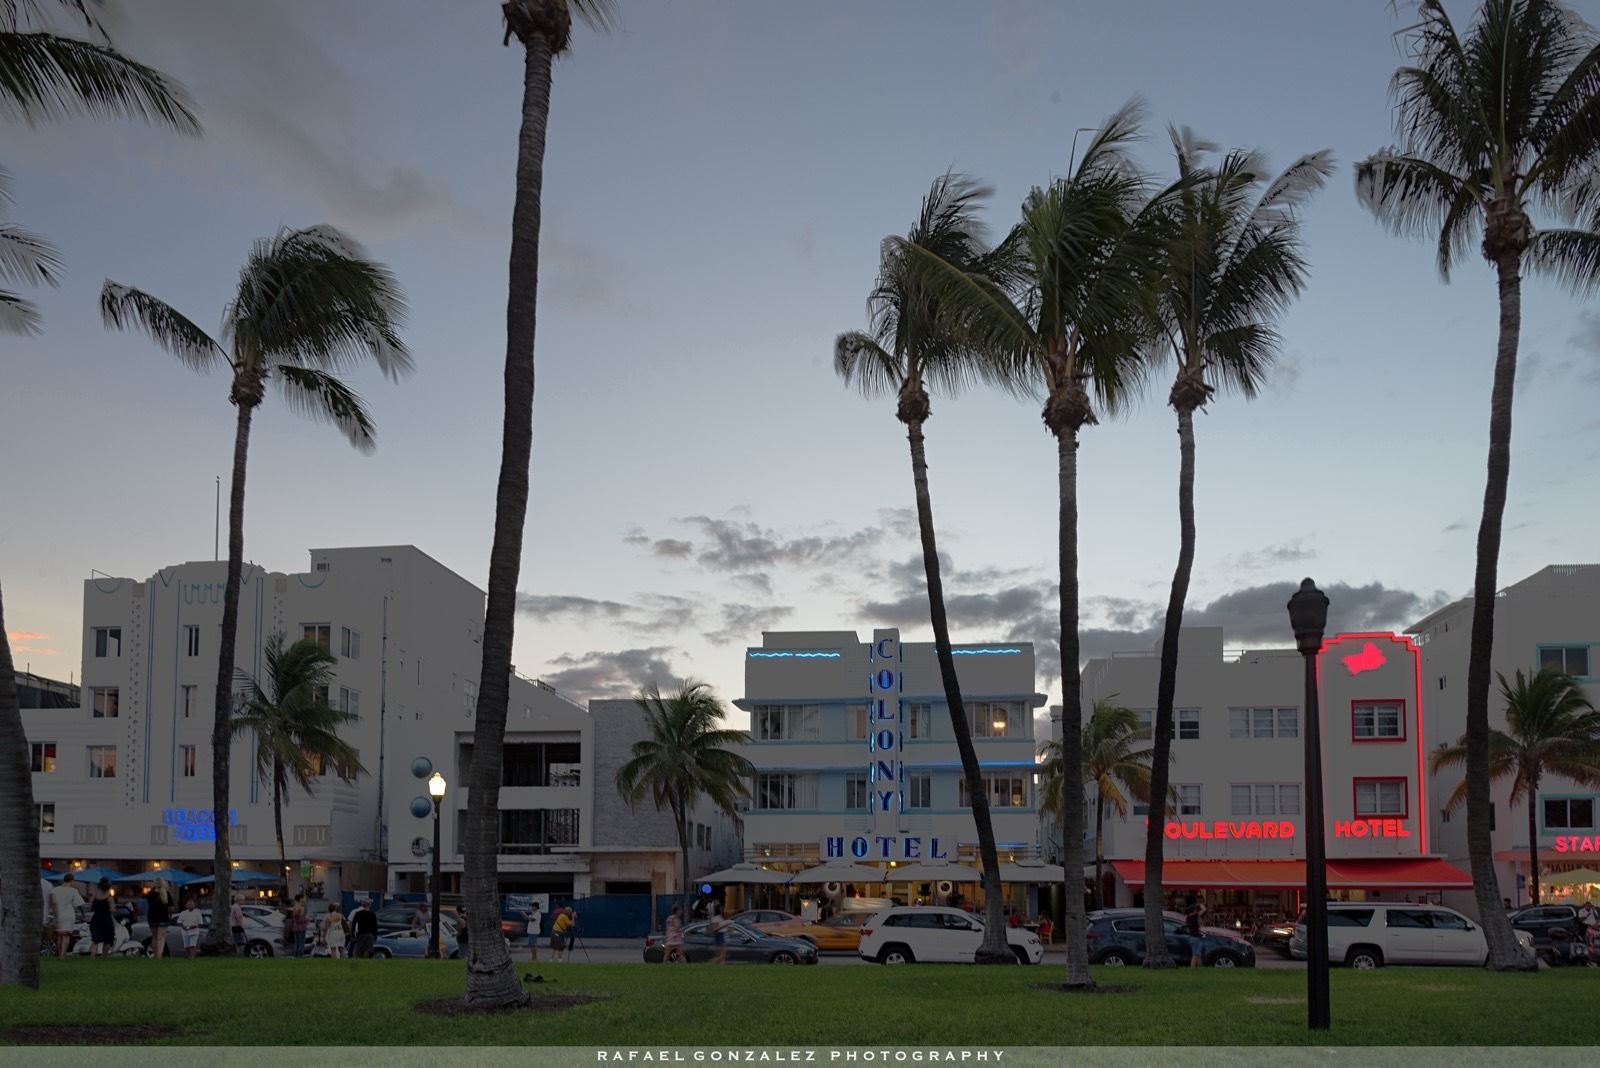 Colony Hotel-Ocean Drive by themagiclensphotography